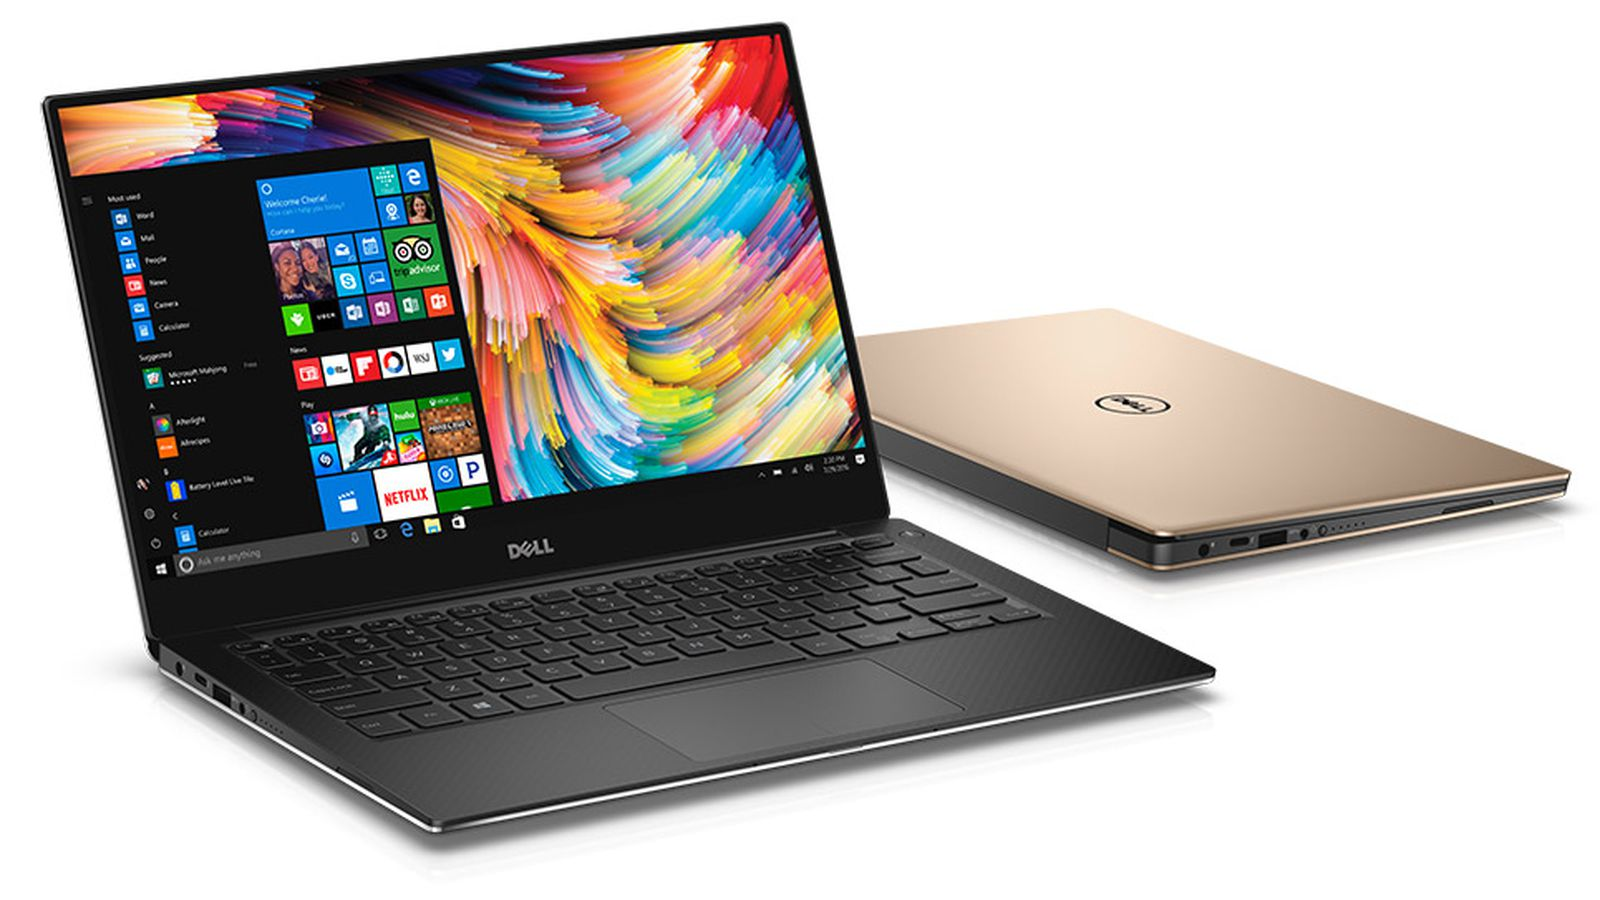 You Can Now Add a $25 Fingerprint Sensor to Dell's Latest Laptops